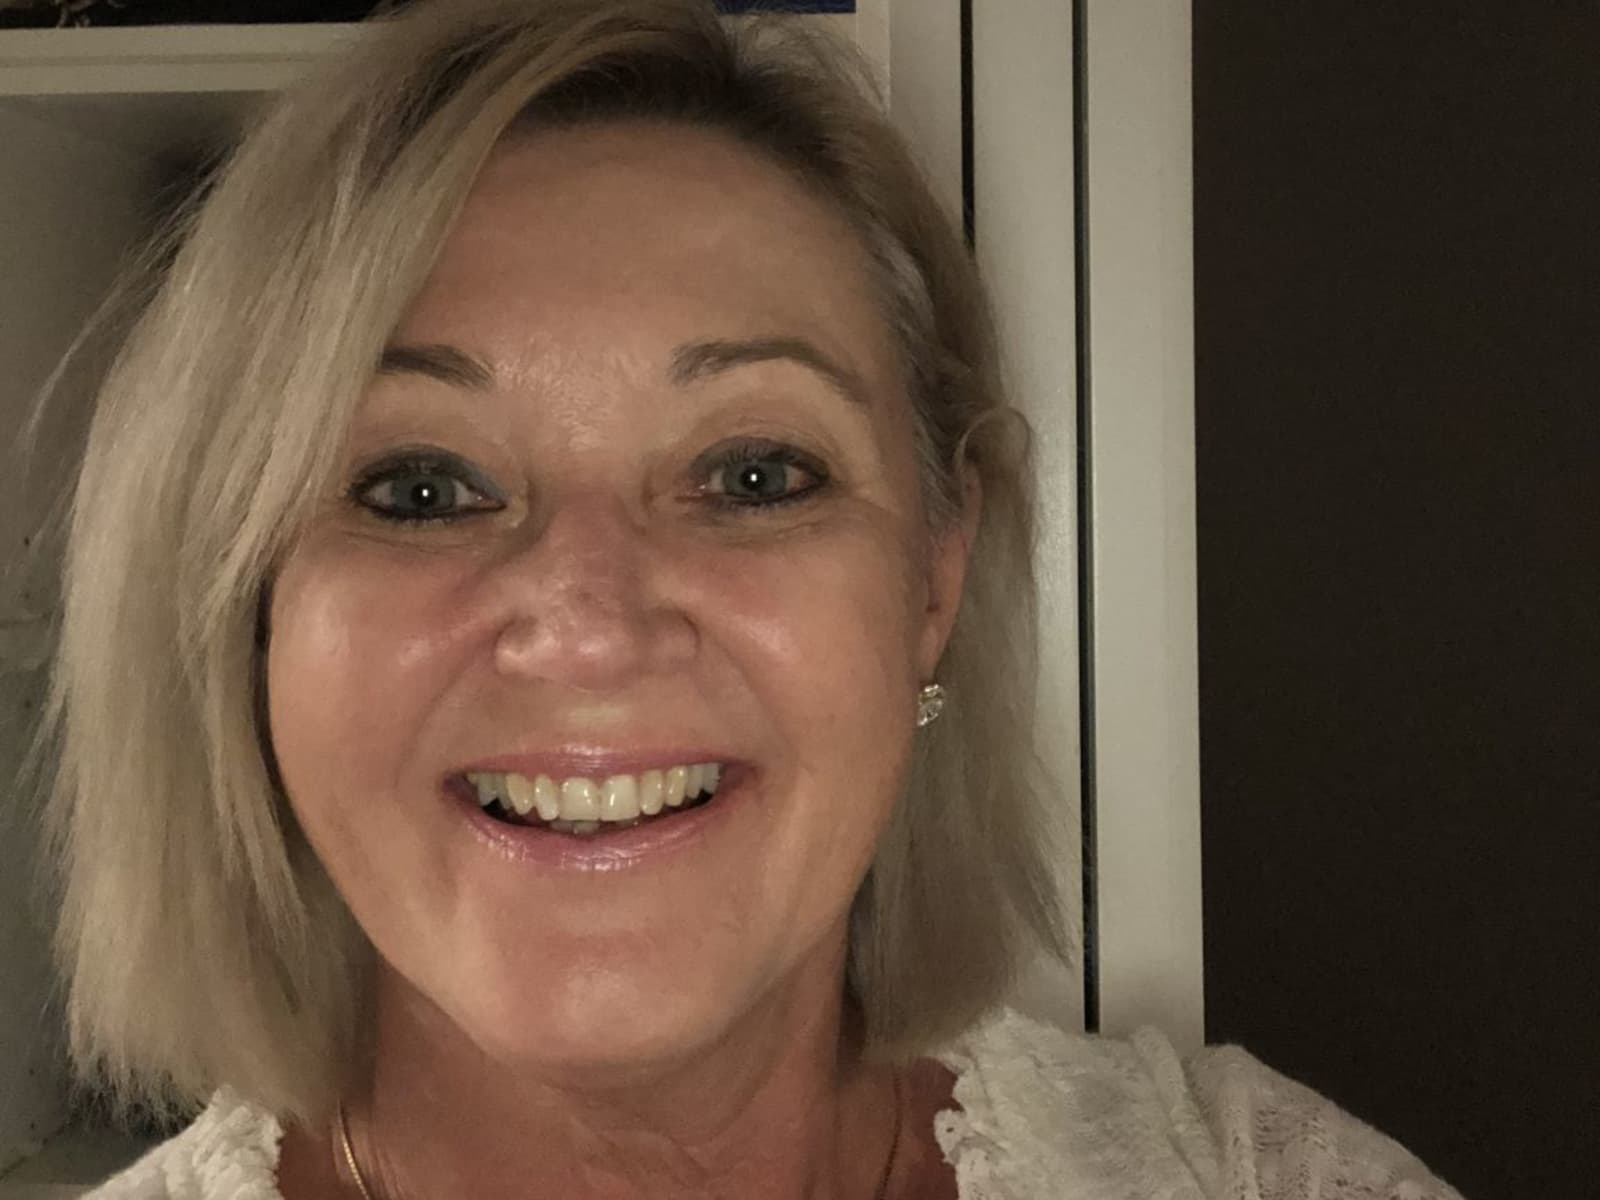 Therese from Southport, Queensland, Australia